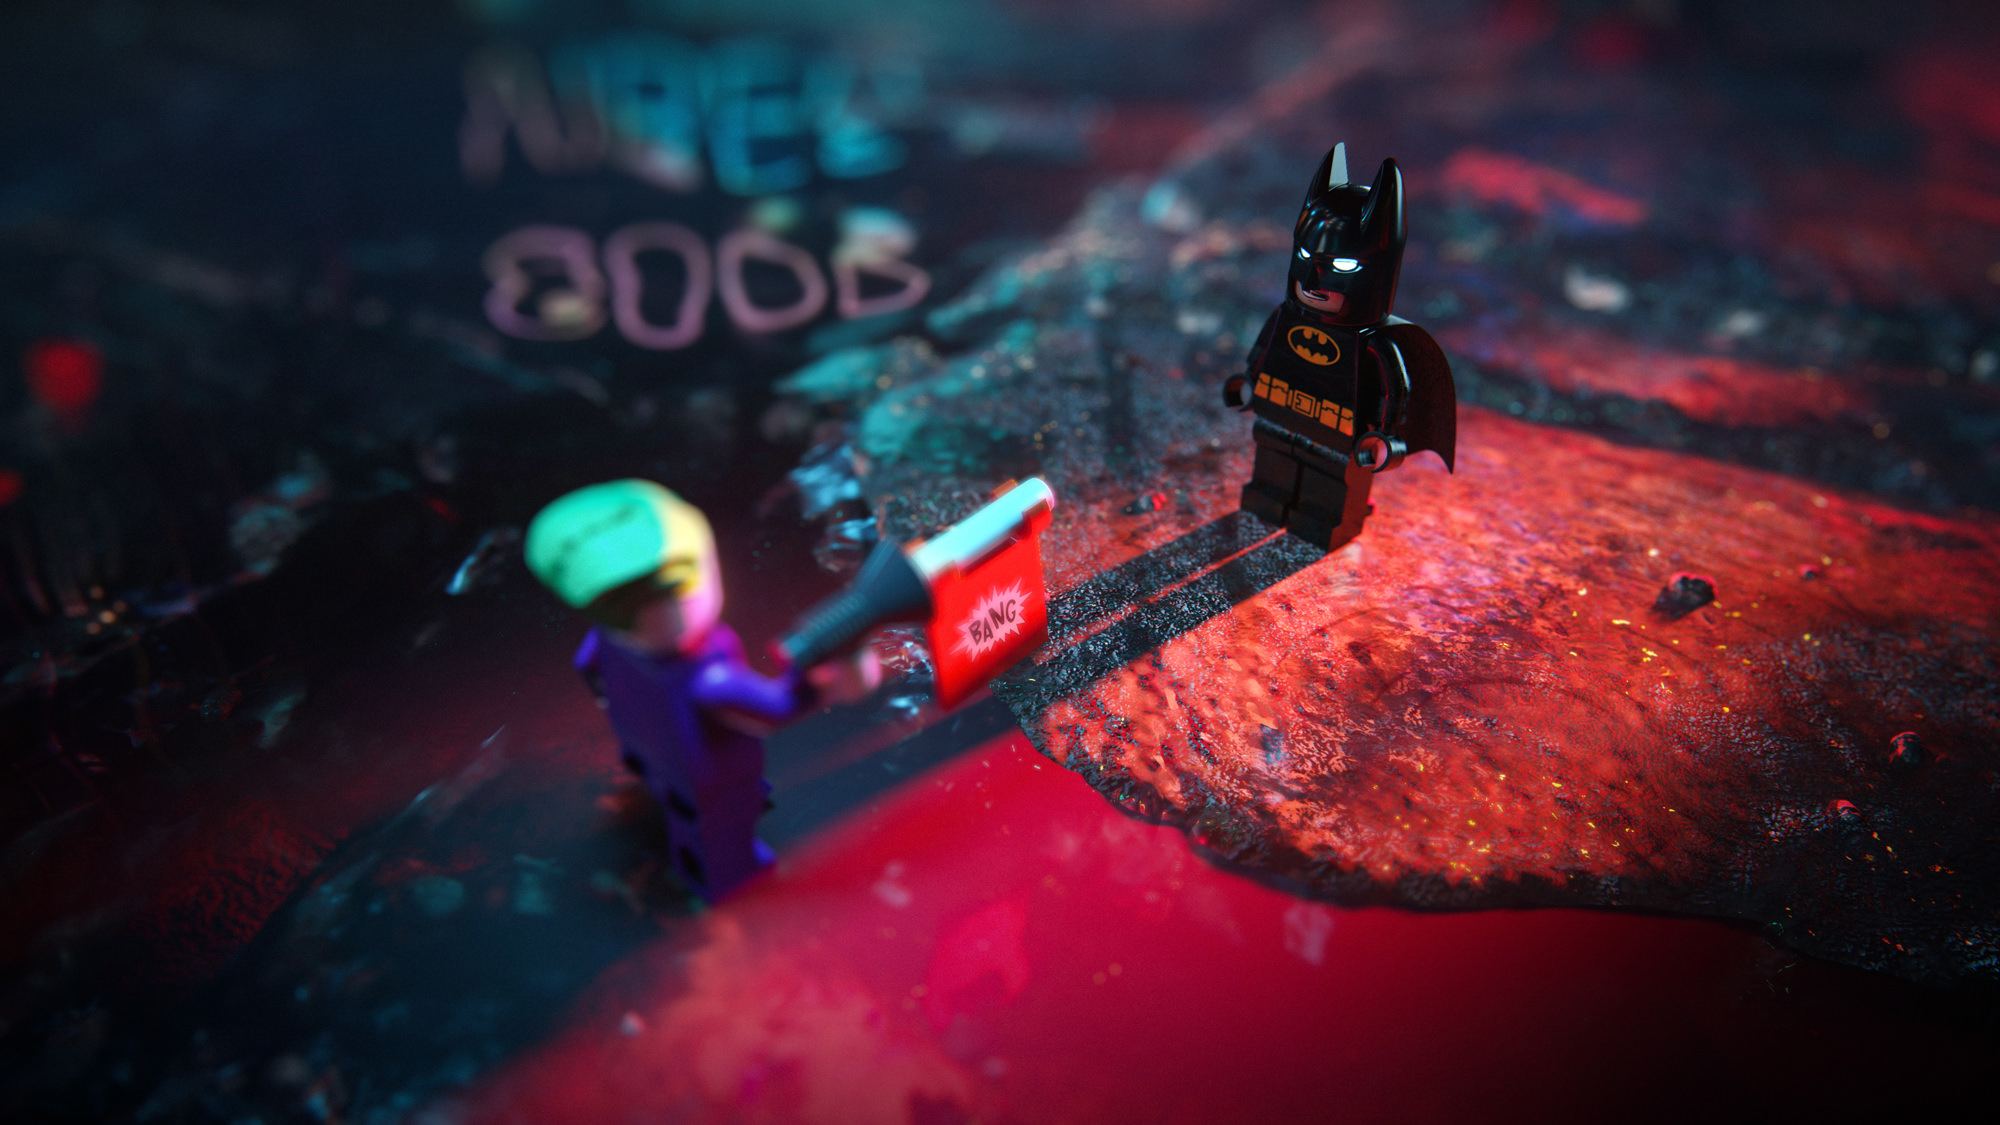 LEGO Batman visualization facing Joker toy rendering inserted into 3D night city visualization